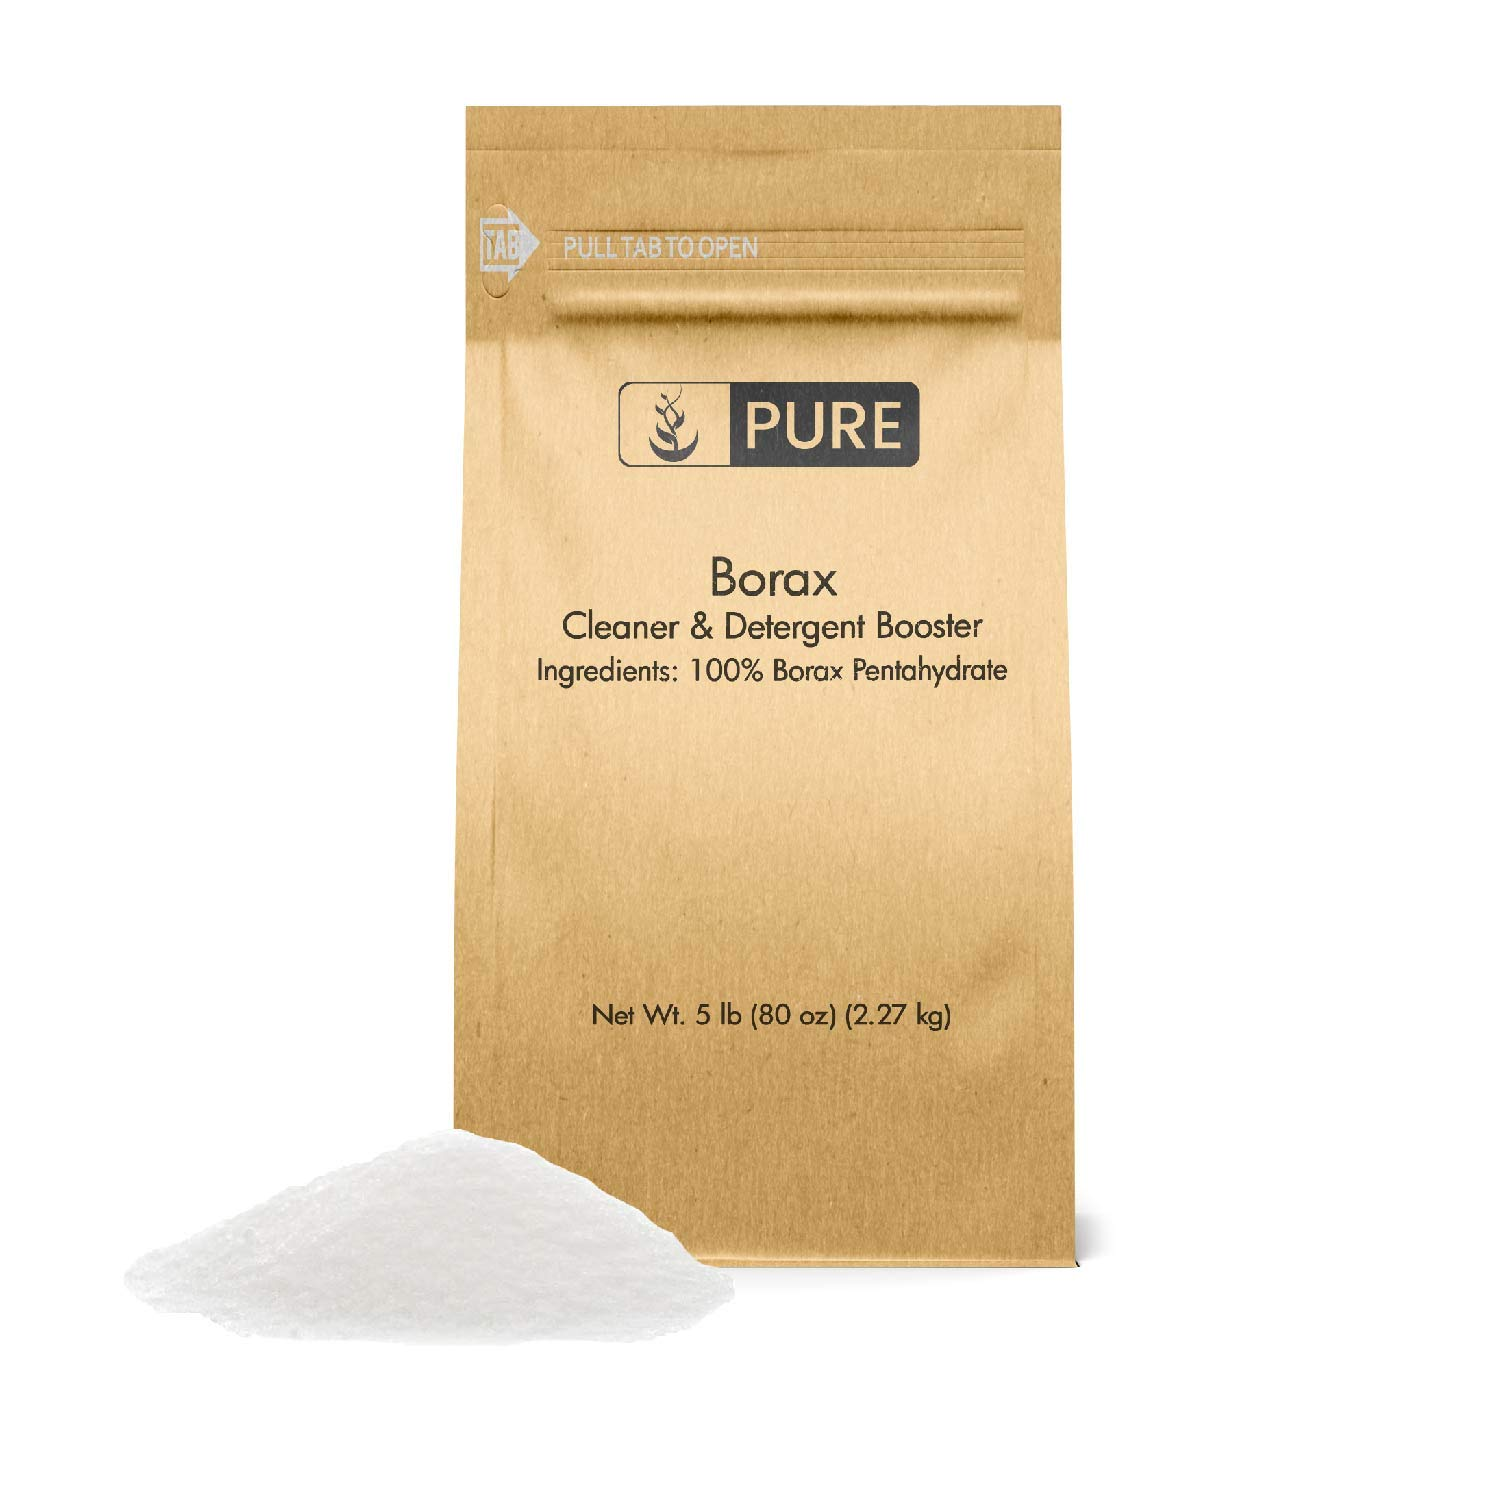 Borax Powder (5 lb.) by Pure Organic Ingredients, All-Natural Multipurpose Cleaner, Detergent Booster, Slime Ingredient by Pure Organic Ingredients